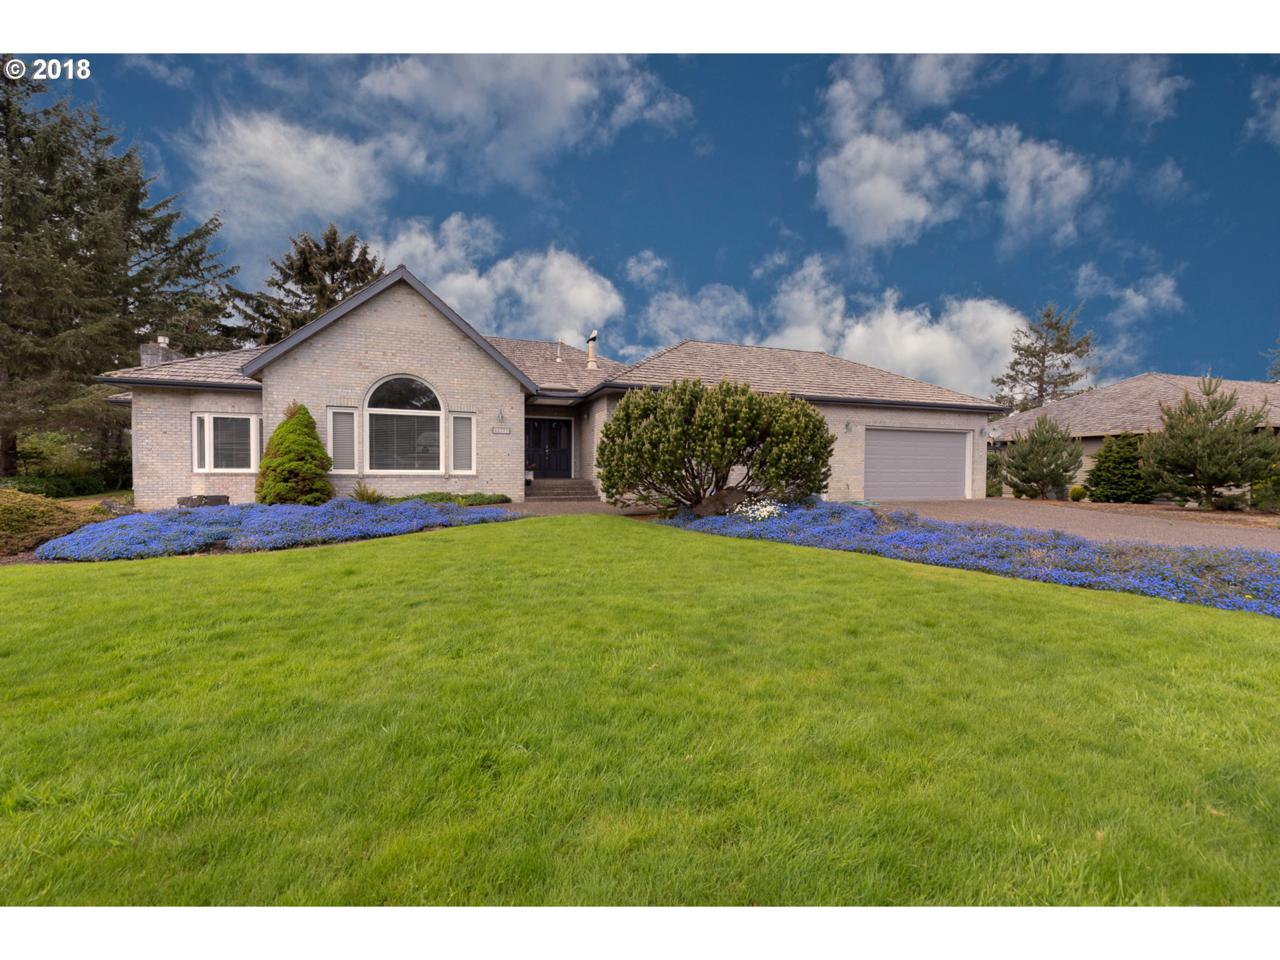 88772 Blue Heron Rd - Photo 1